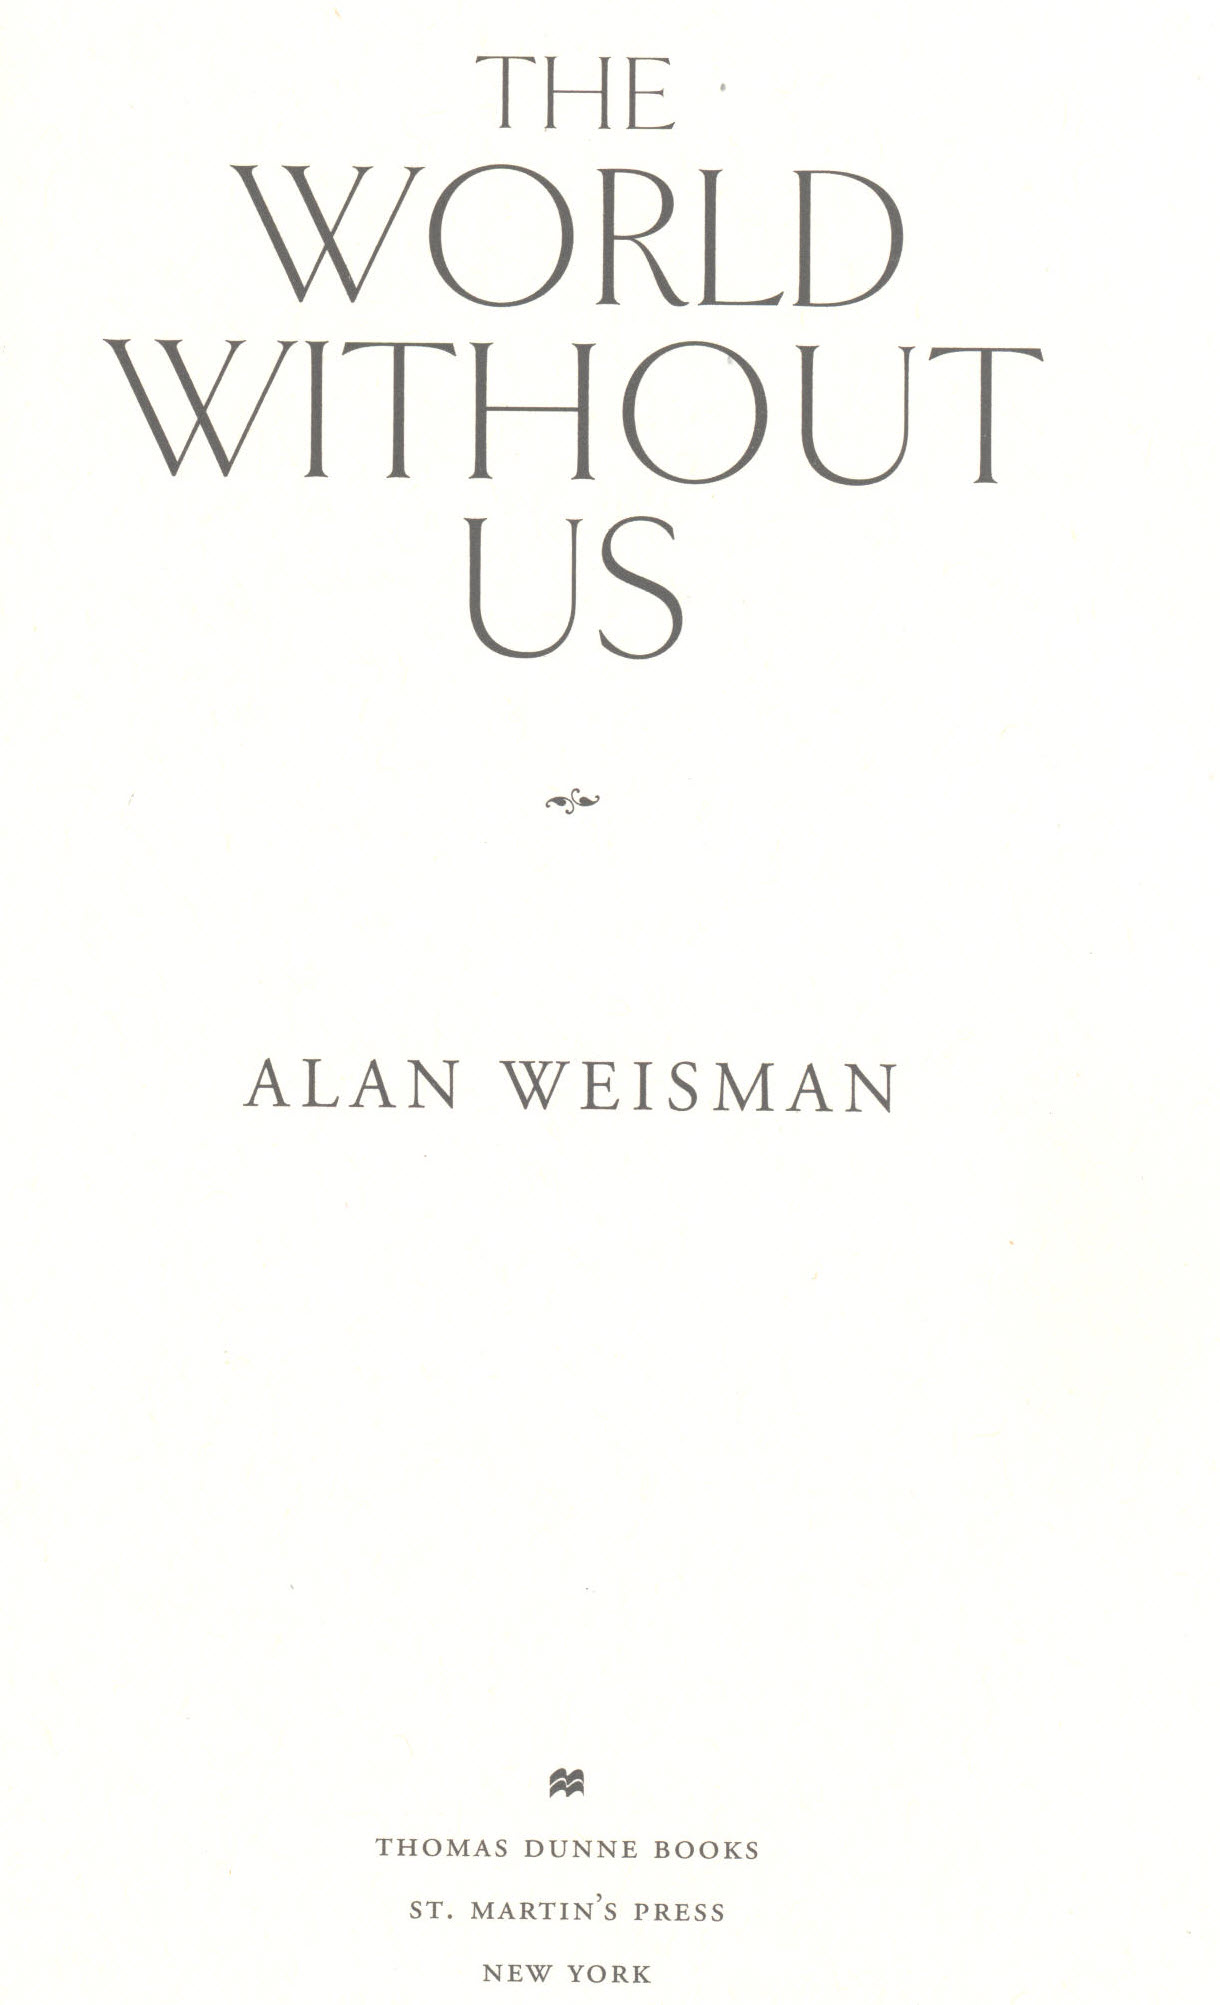 Title page of the book The World Without Us